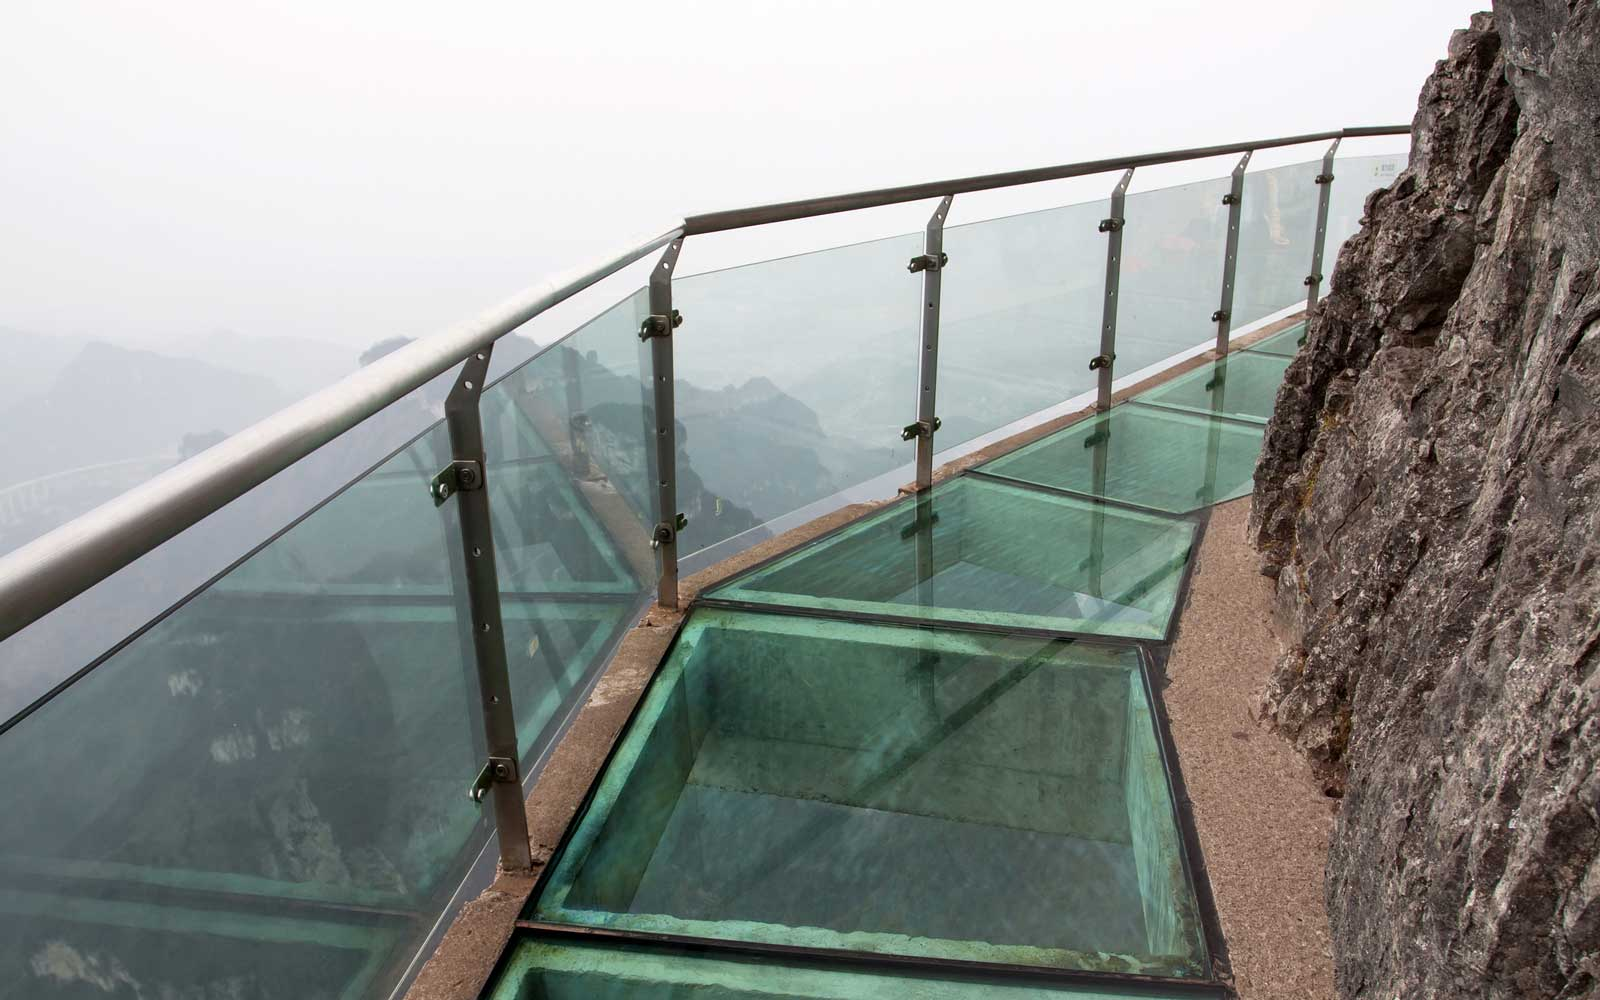 Glass sky walk at Tianmenshan Mountain in China